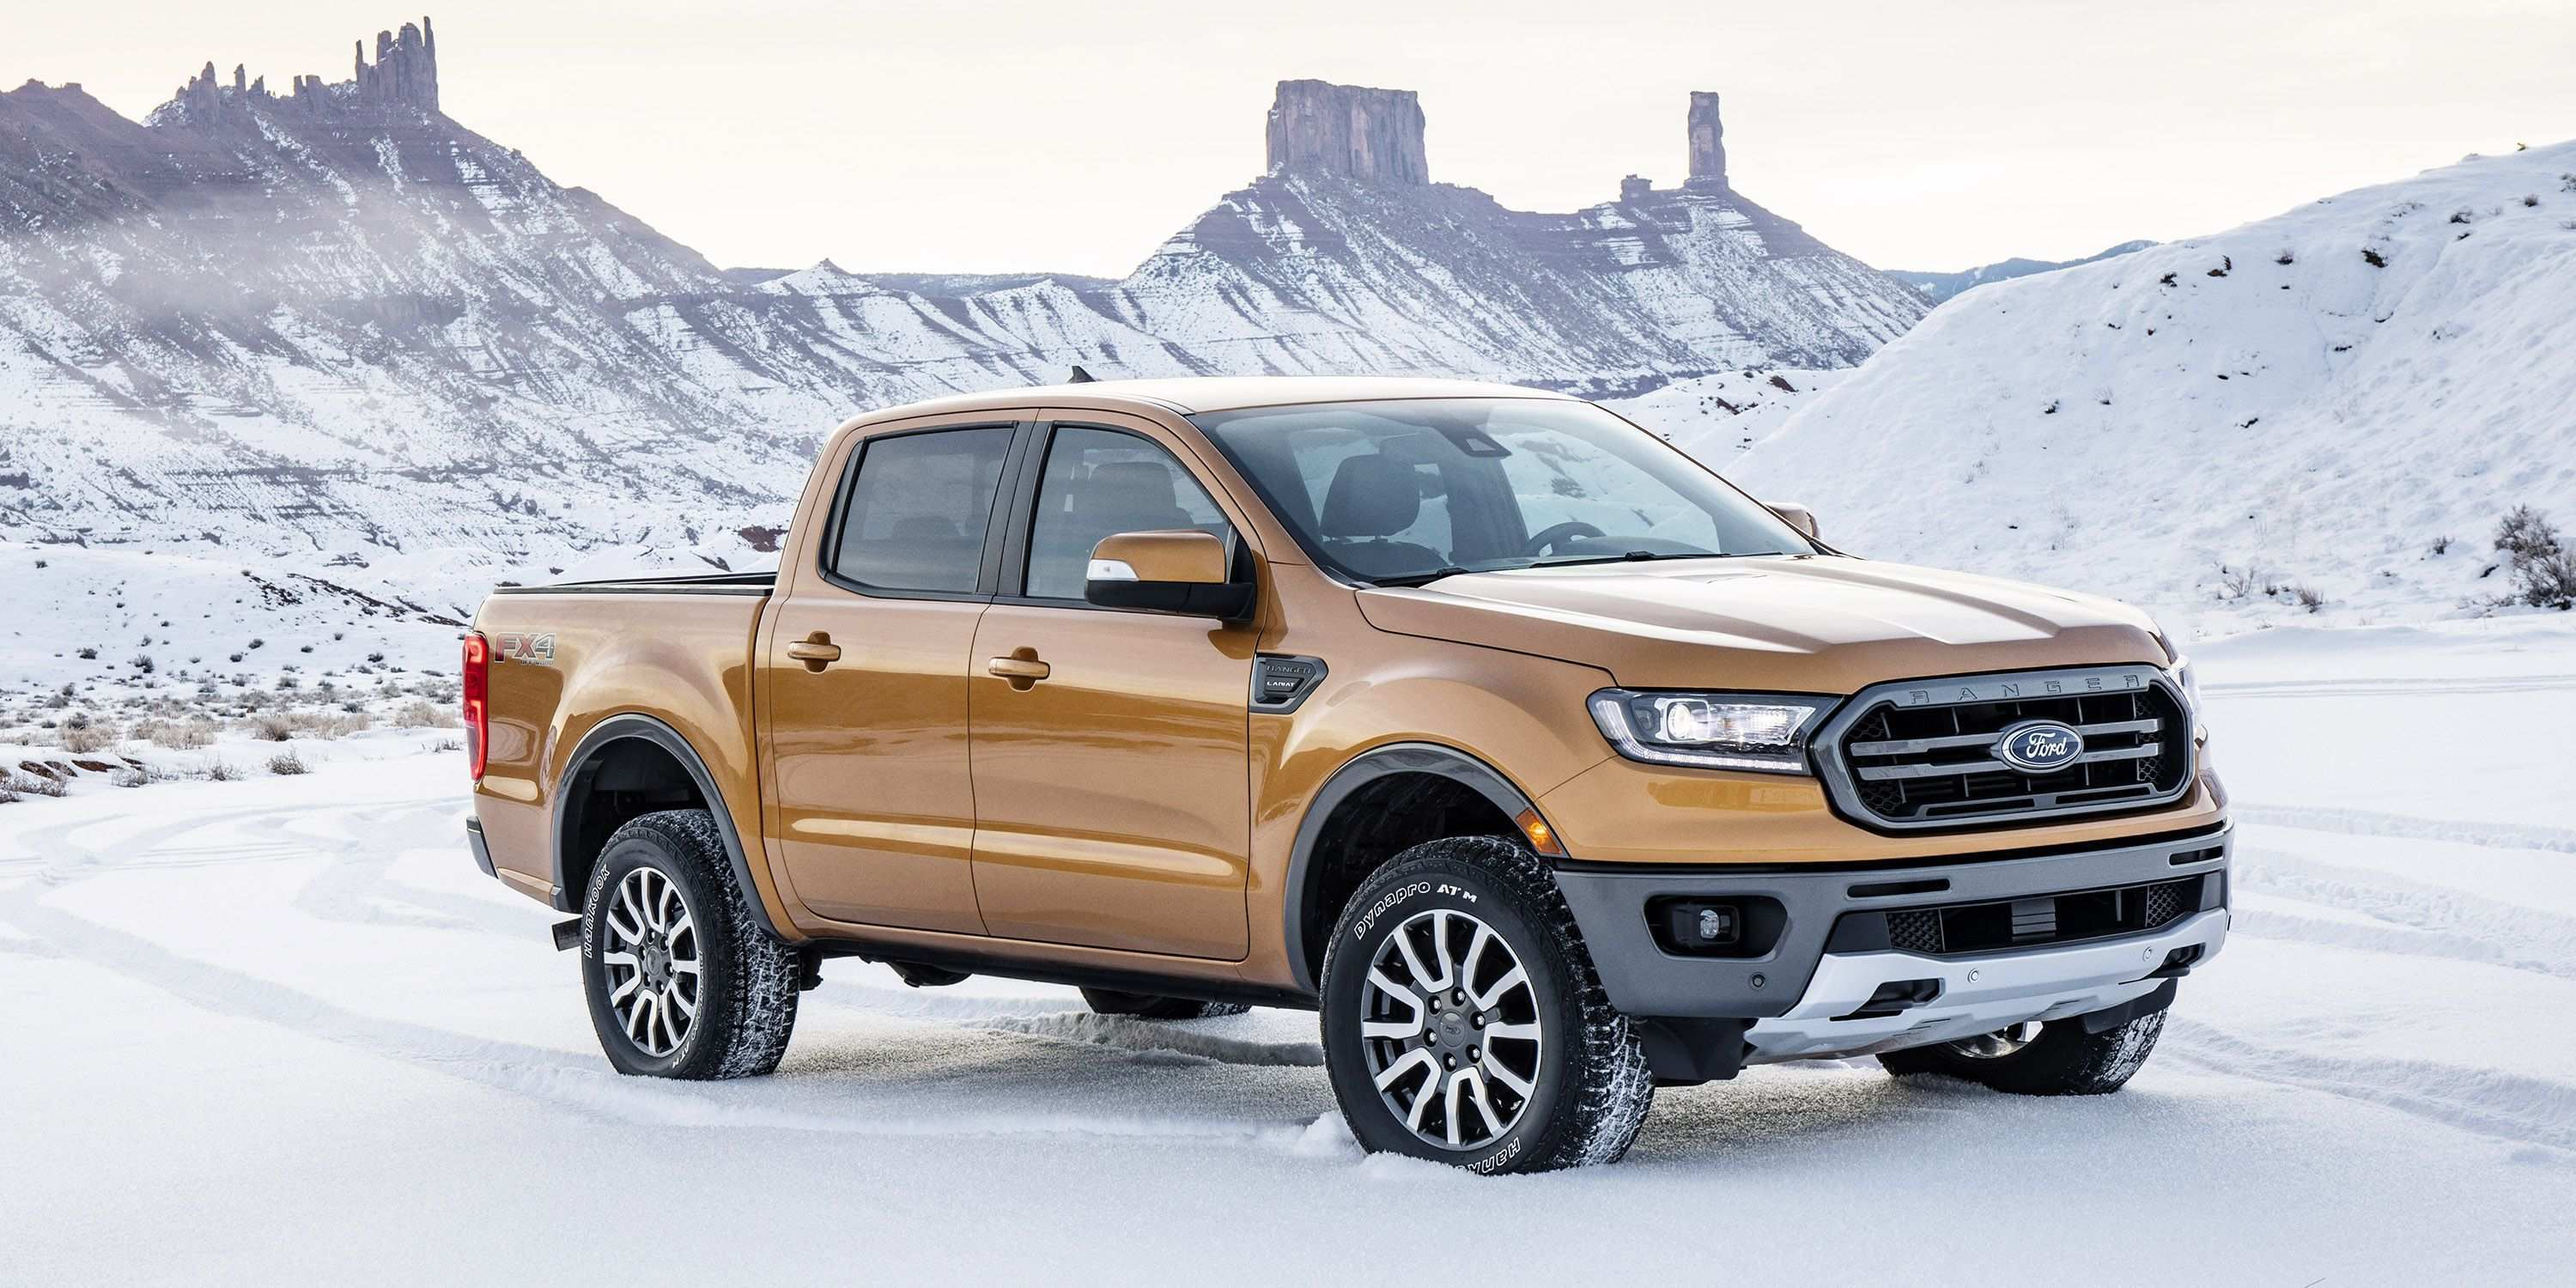 14 All New 2020 Ford Ranger Wildtrak Speed Test with 2020 Ford Ranger Wildtrak